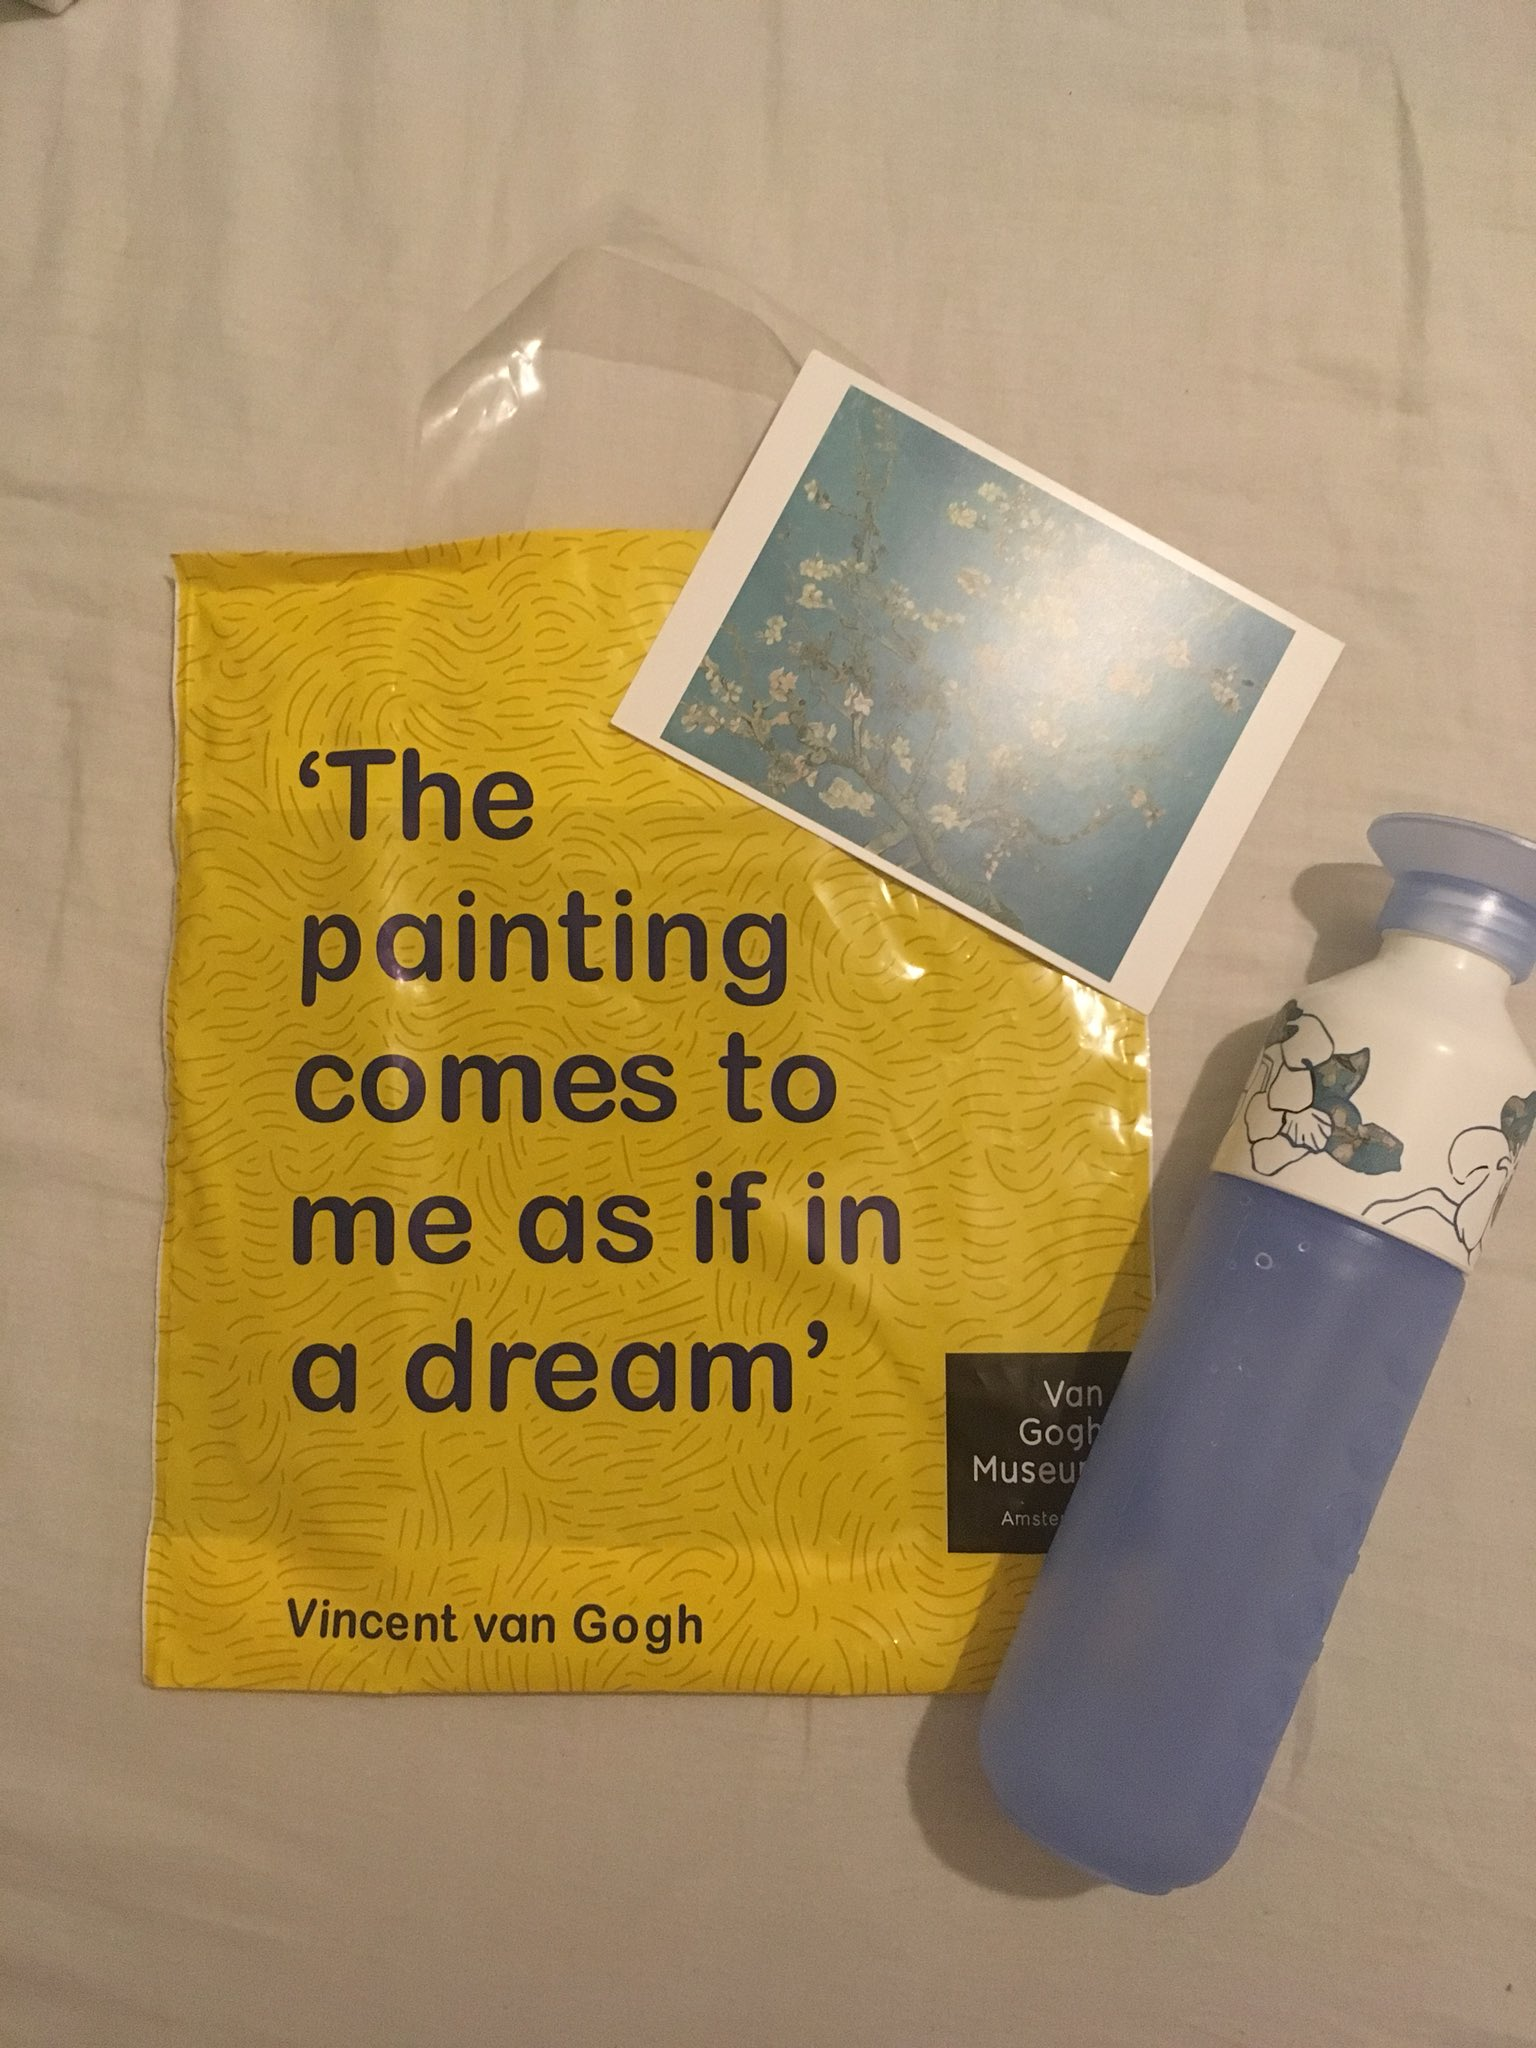 Sel Is Seeing Bts On Twitter Anyways I Went To The Van Gogh Museum Shop Today And I Bought This Almond Blossom Dopper And Some Postcards Of My Favorite Paintings Including Almond